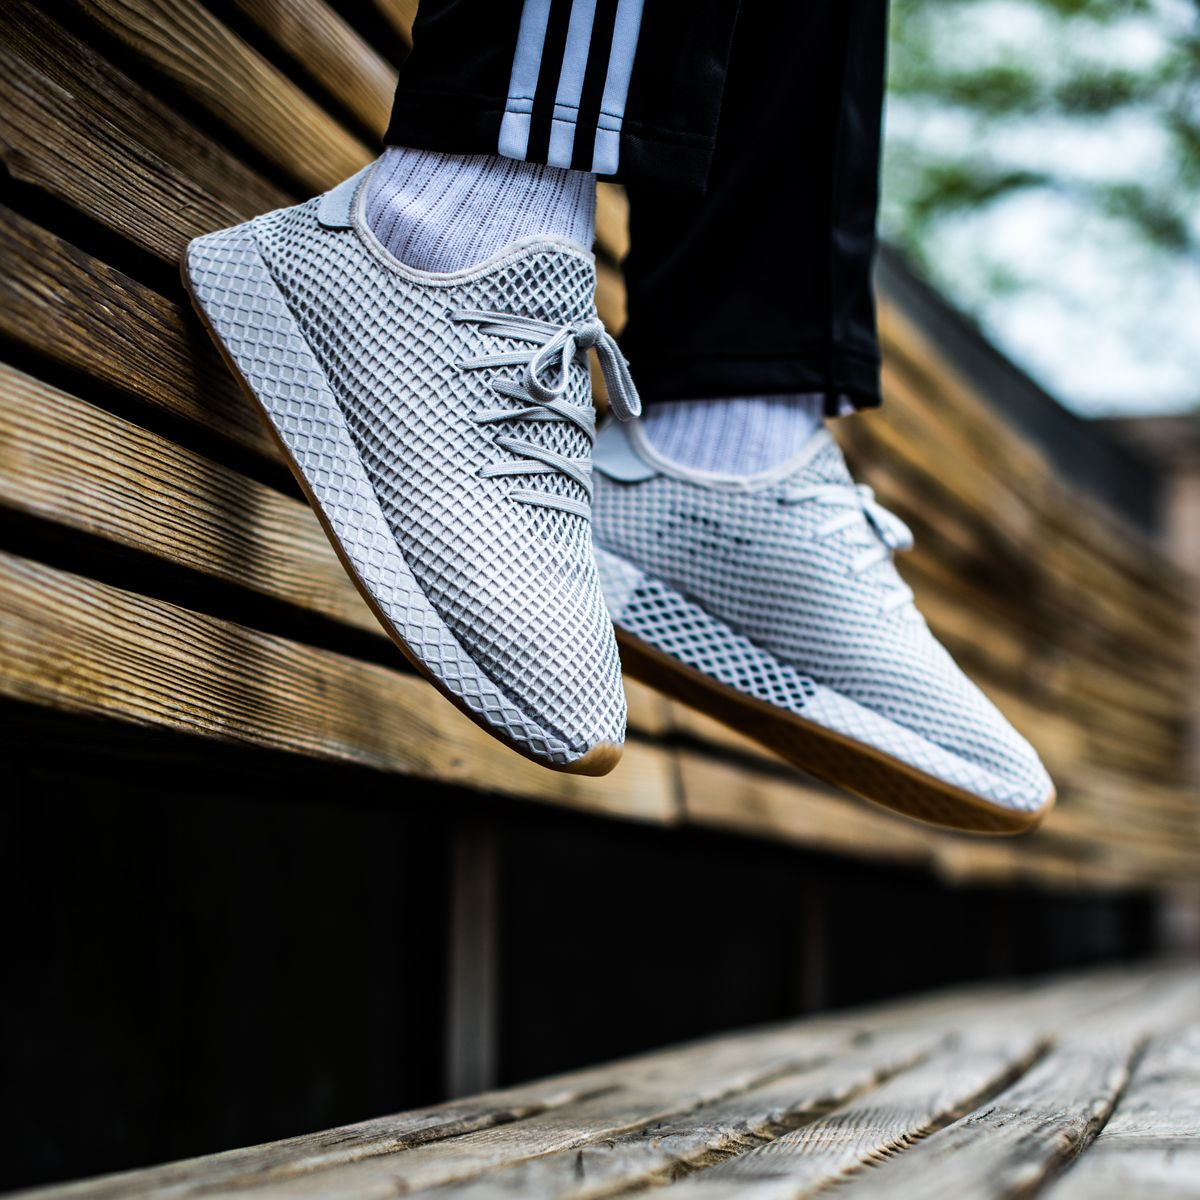 sports shoes 581f0 e5bd5 The Adidas Deerupt Runner in a